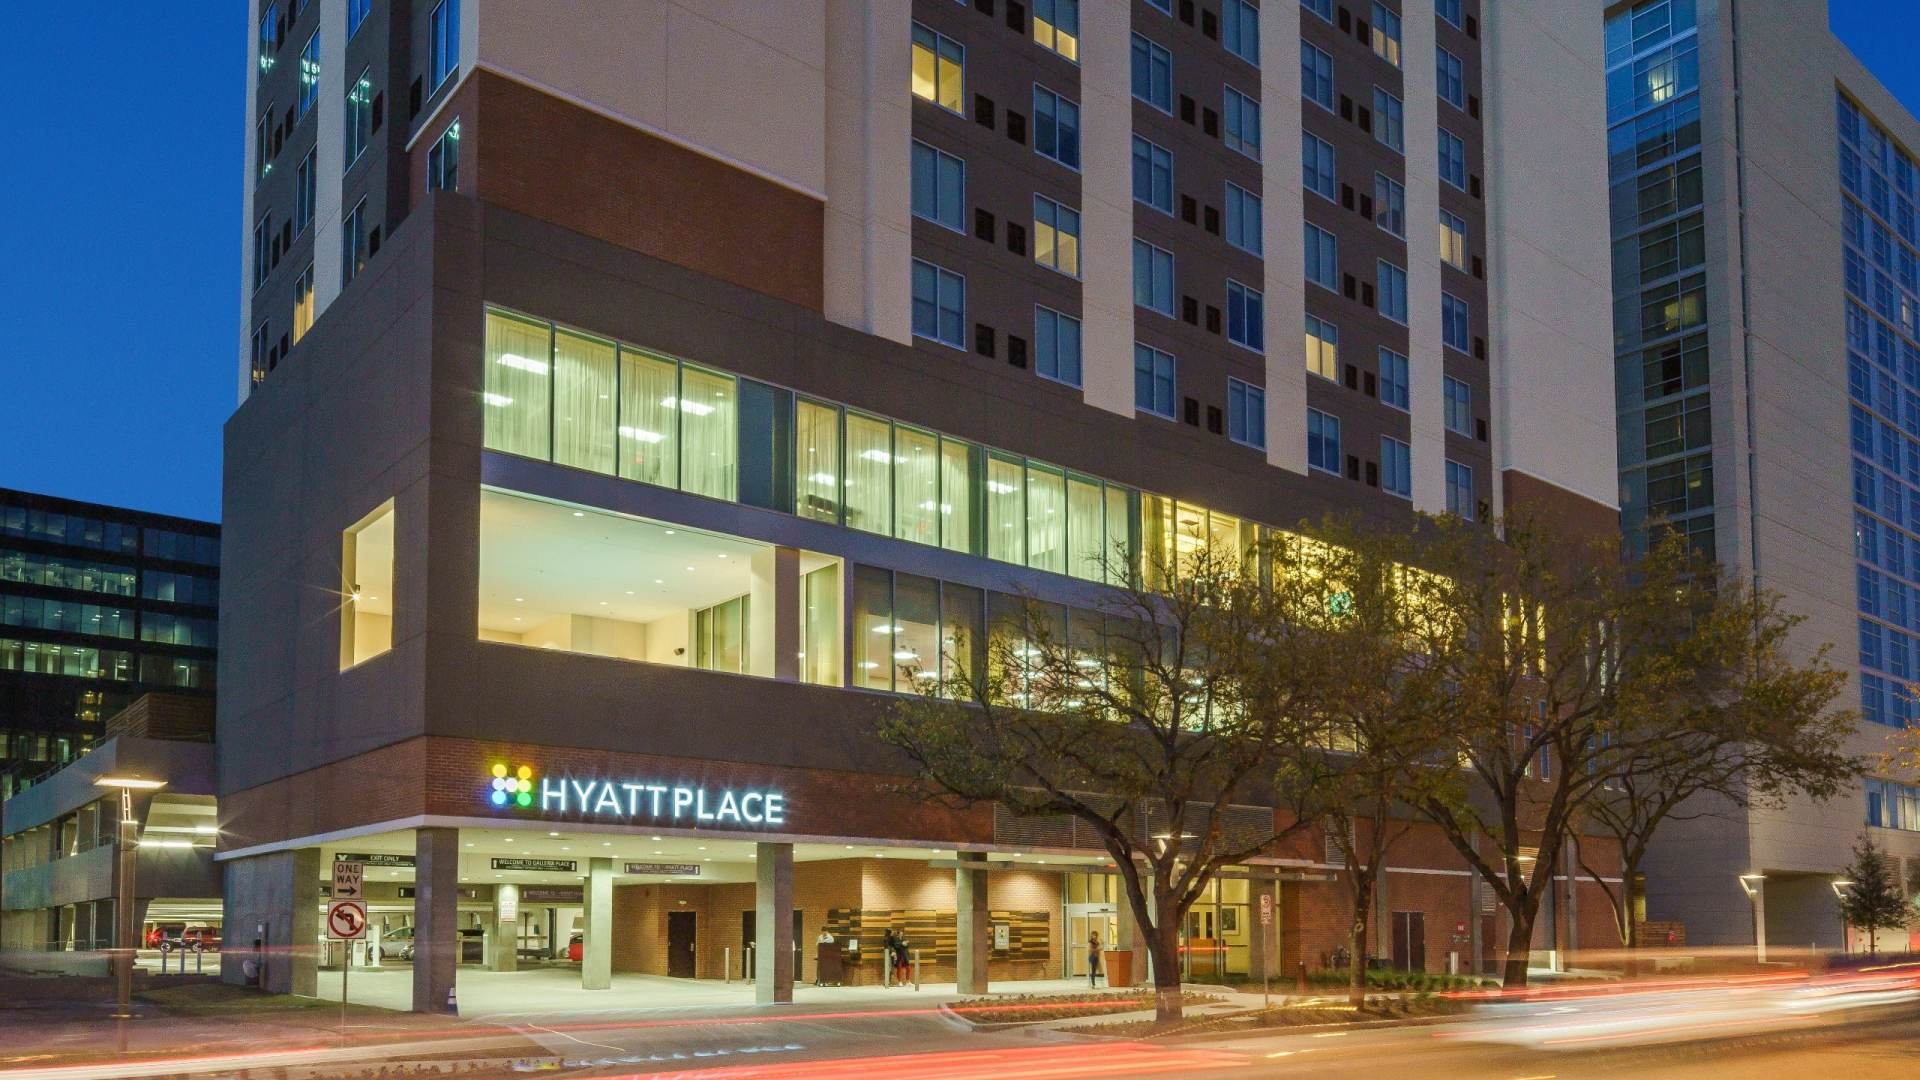 Hyatt House Houston Galleria 2